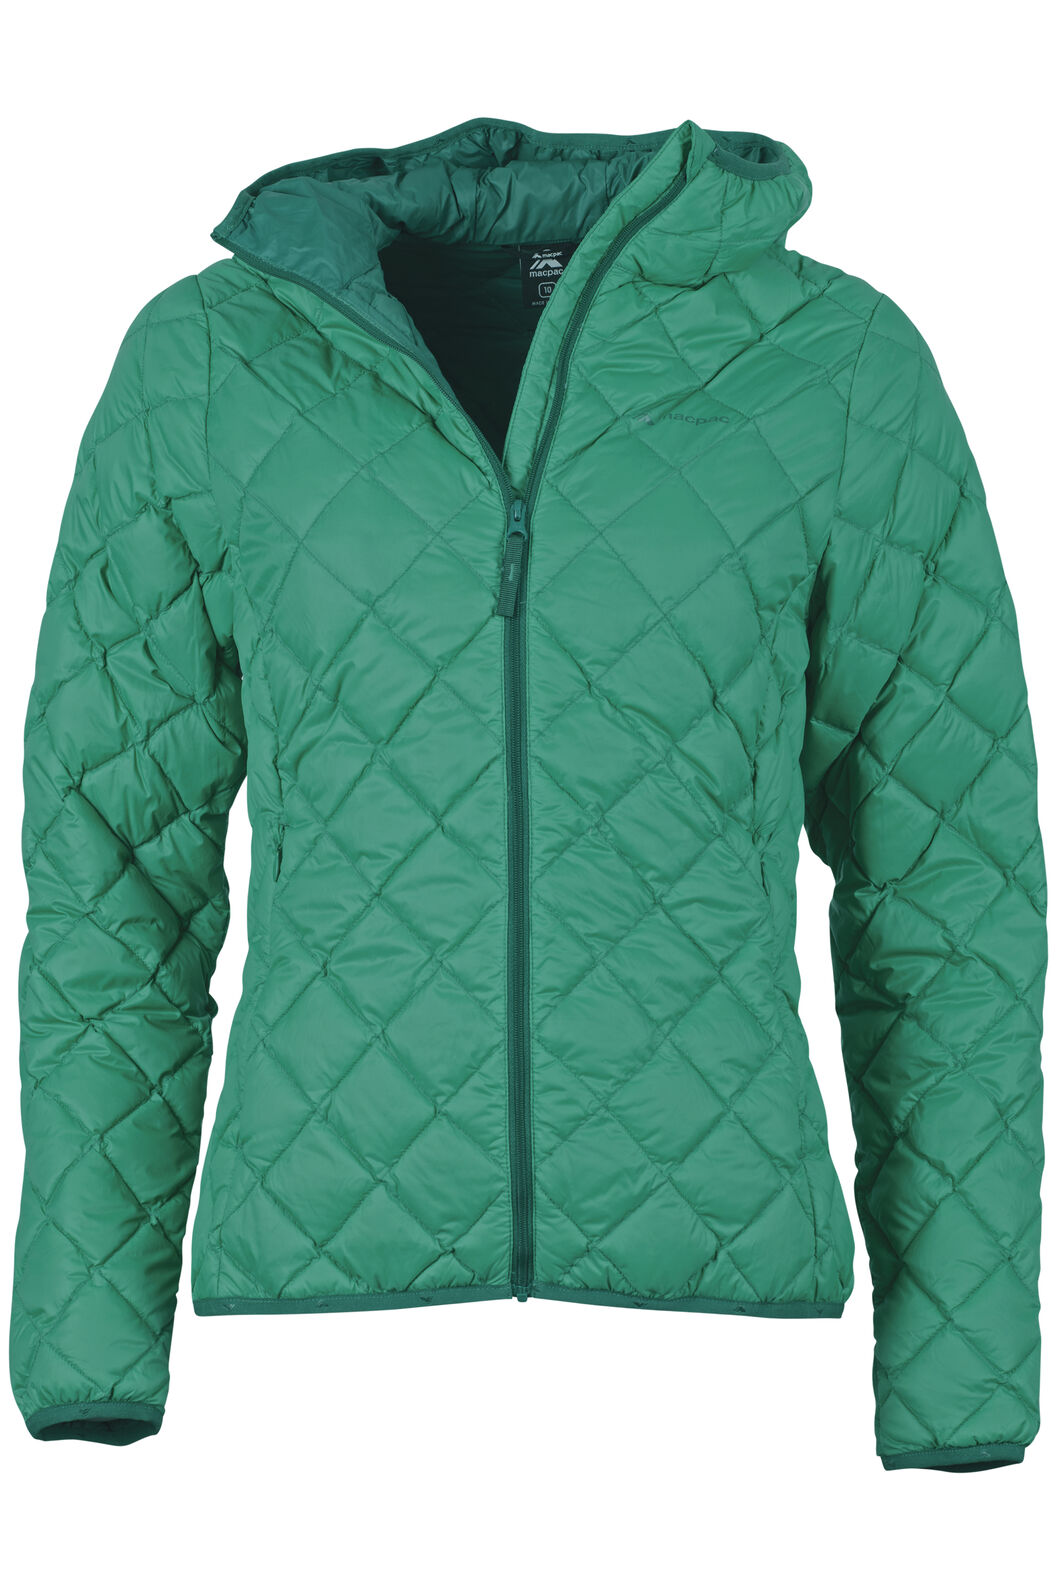 Macpac Uber Light Hooded Down Jacket - Women's, Arcadia, hi-res